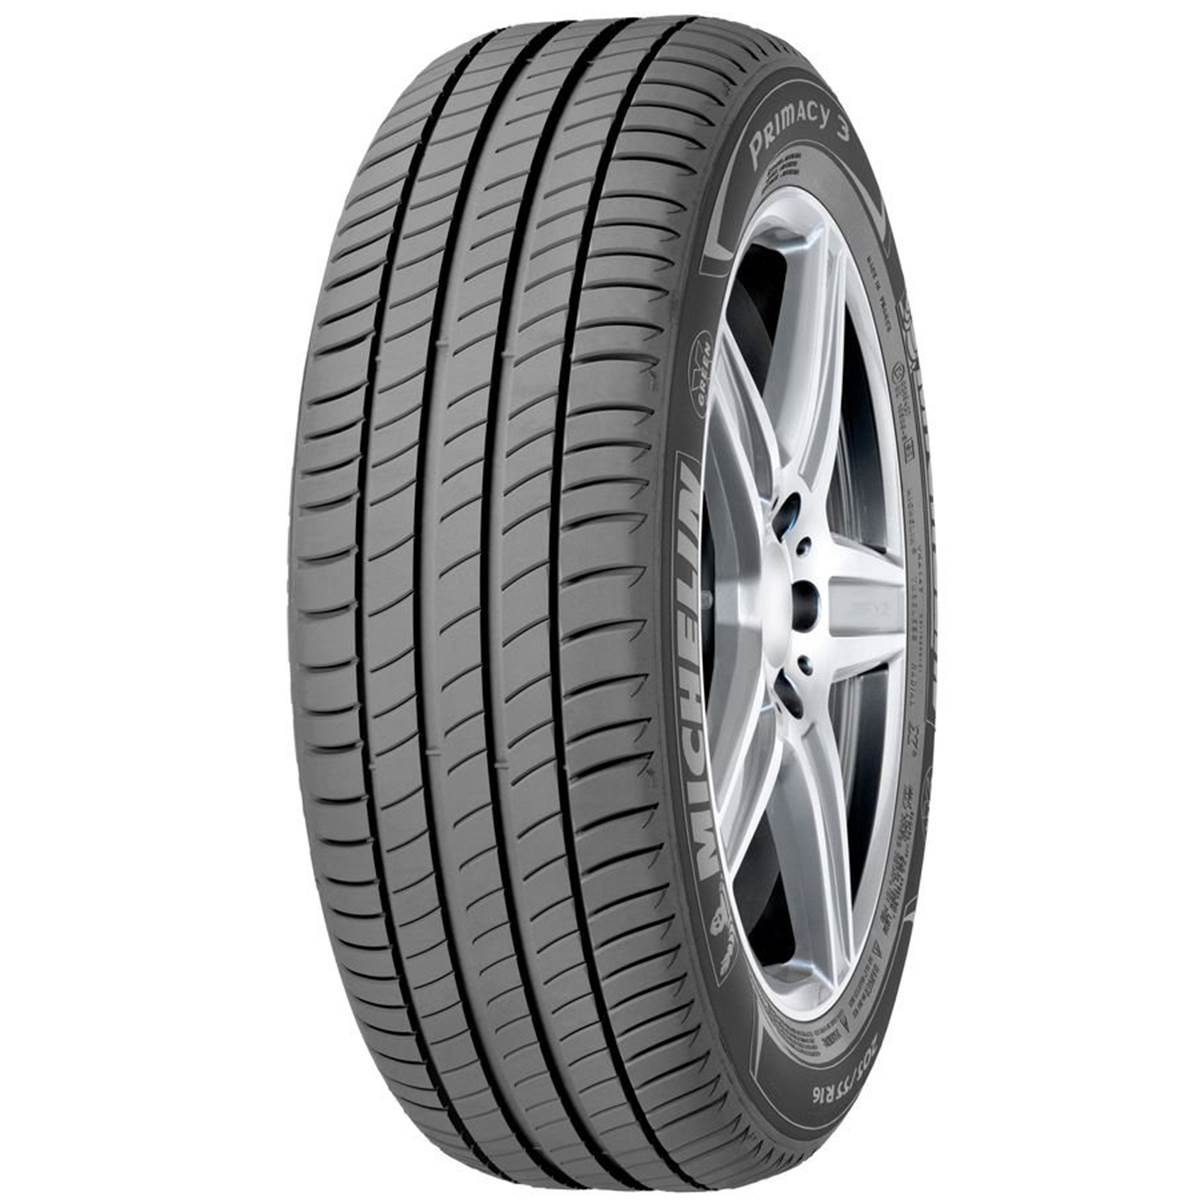 Pneu Michelin 225/60R17 99Y Primacy 3